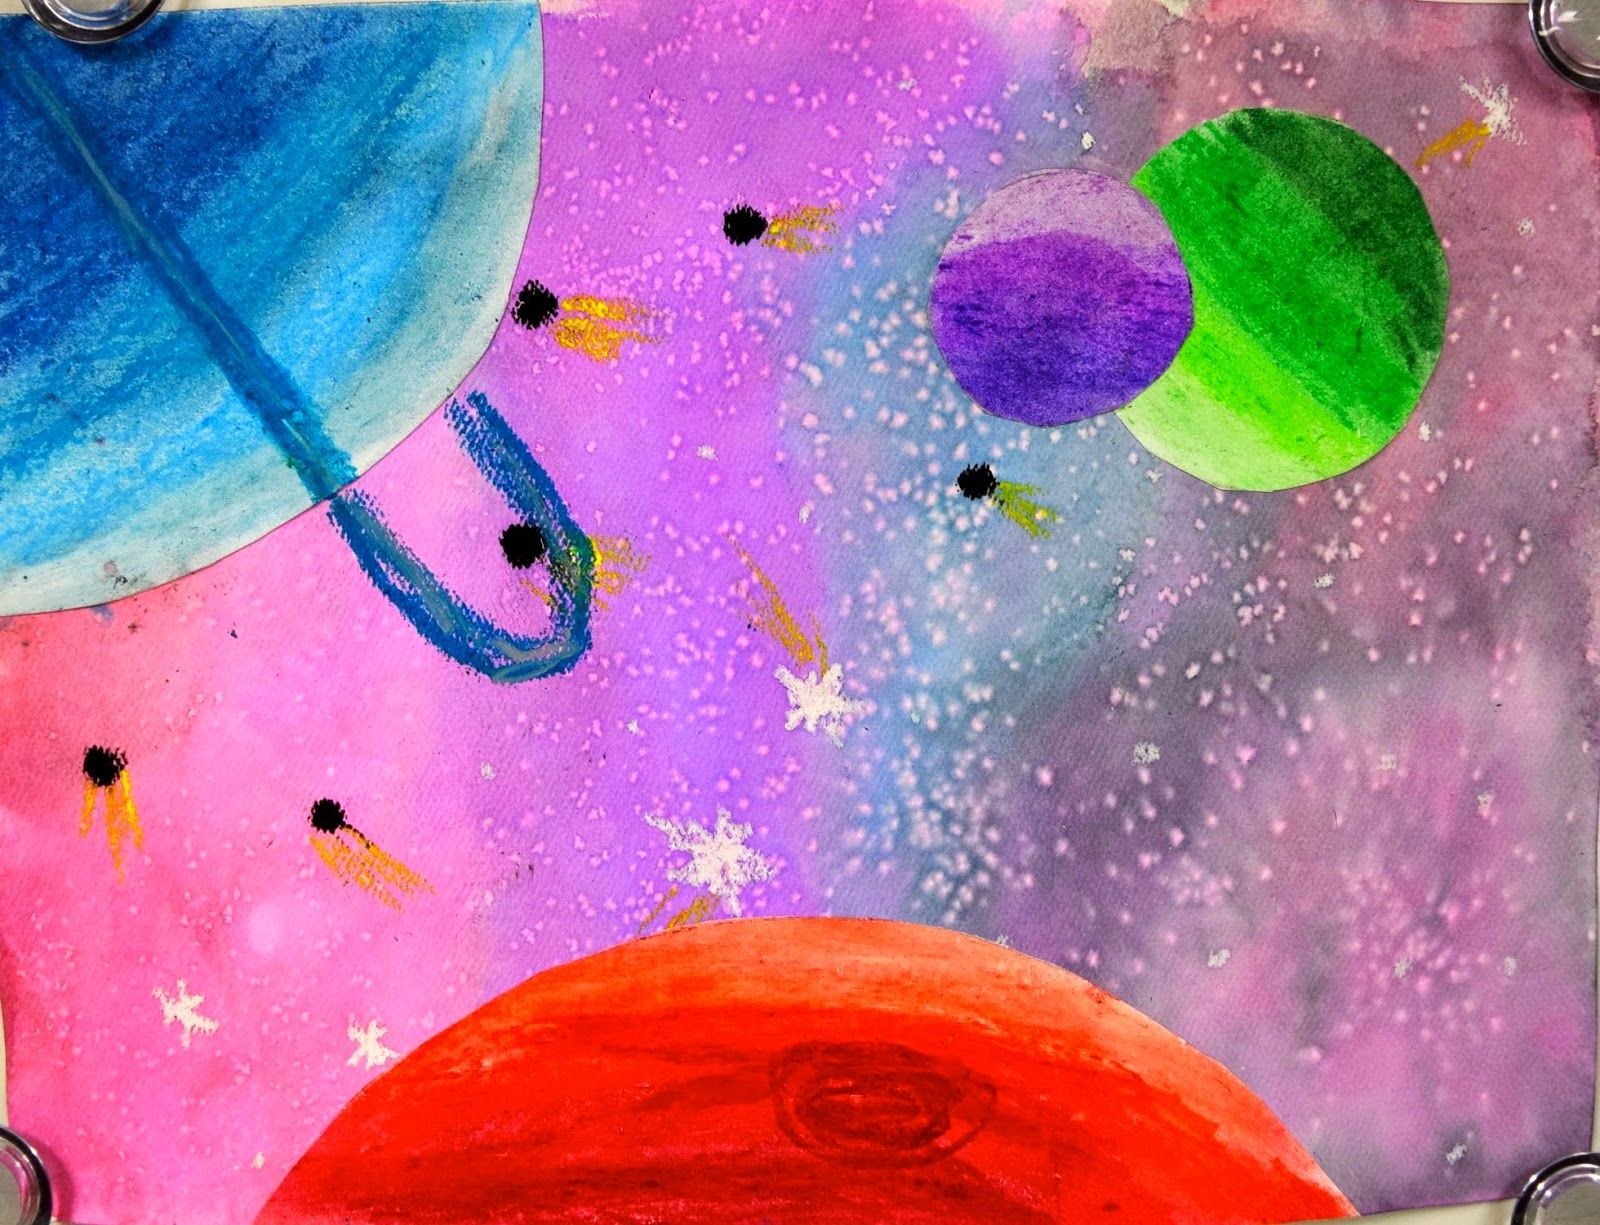 4th 5th Fantasy Space Scapes Planets Oil Pastel And Watercolor W Salt